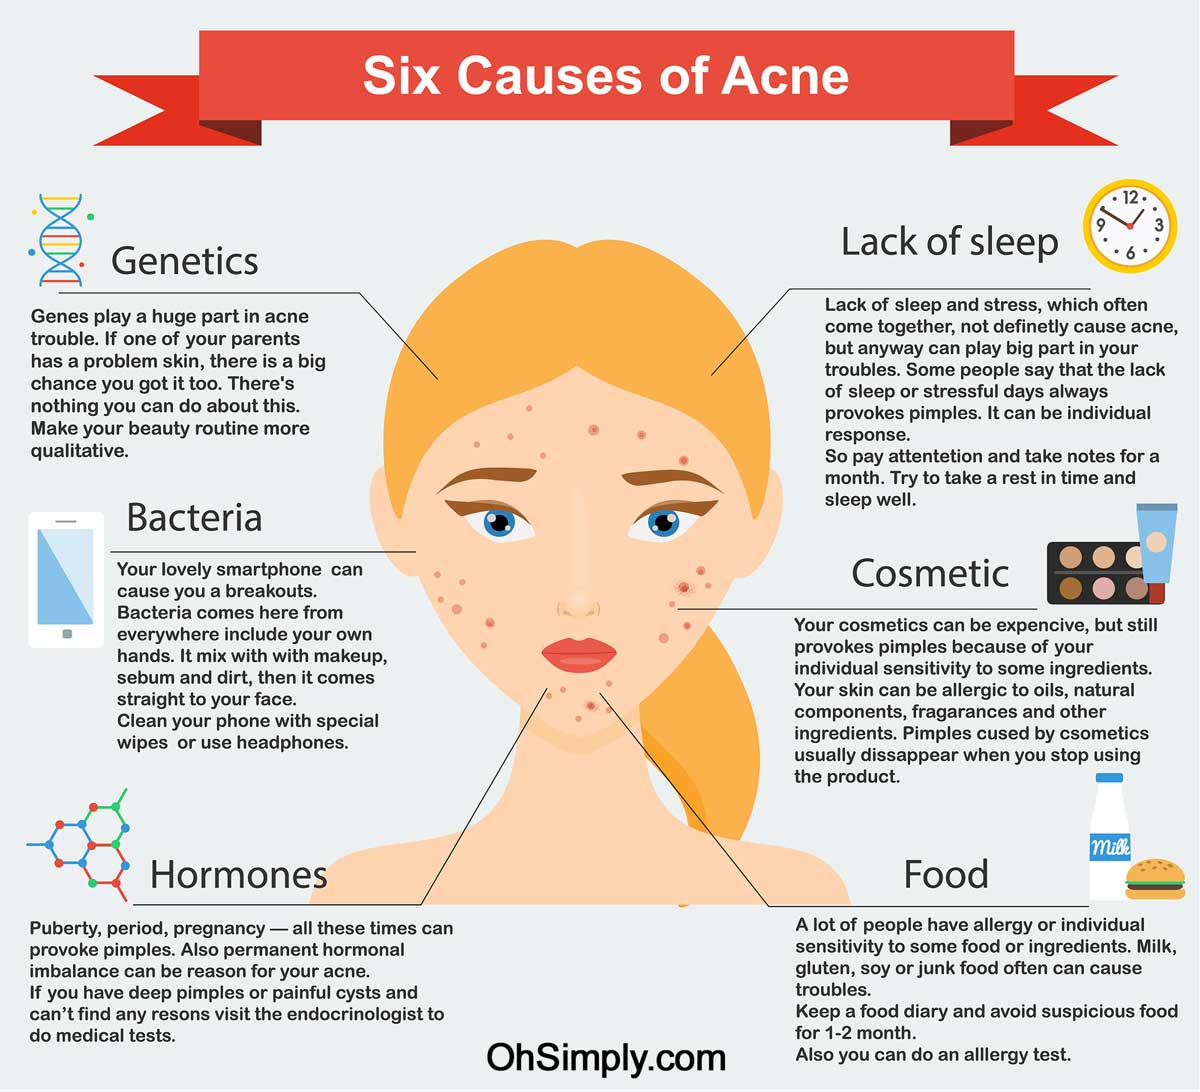 Six Causes of Acne